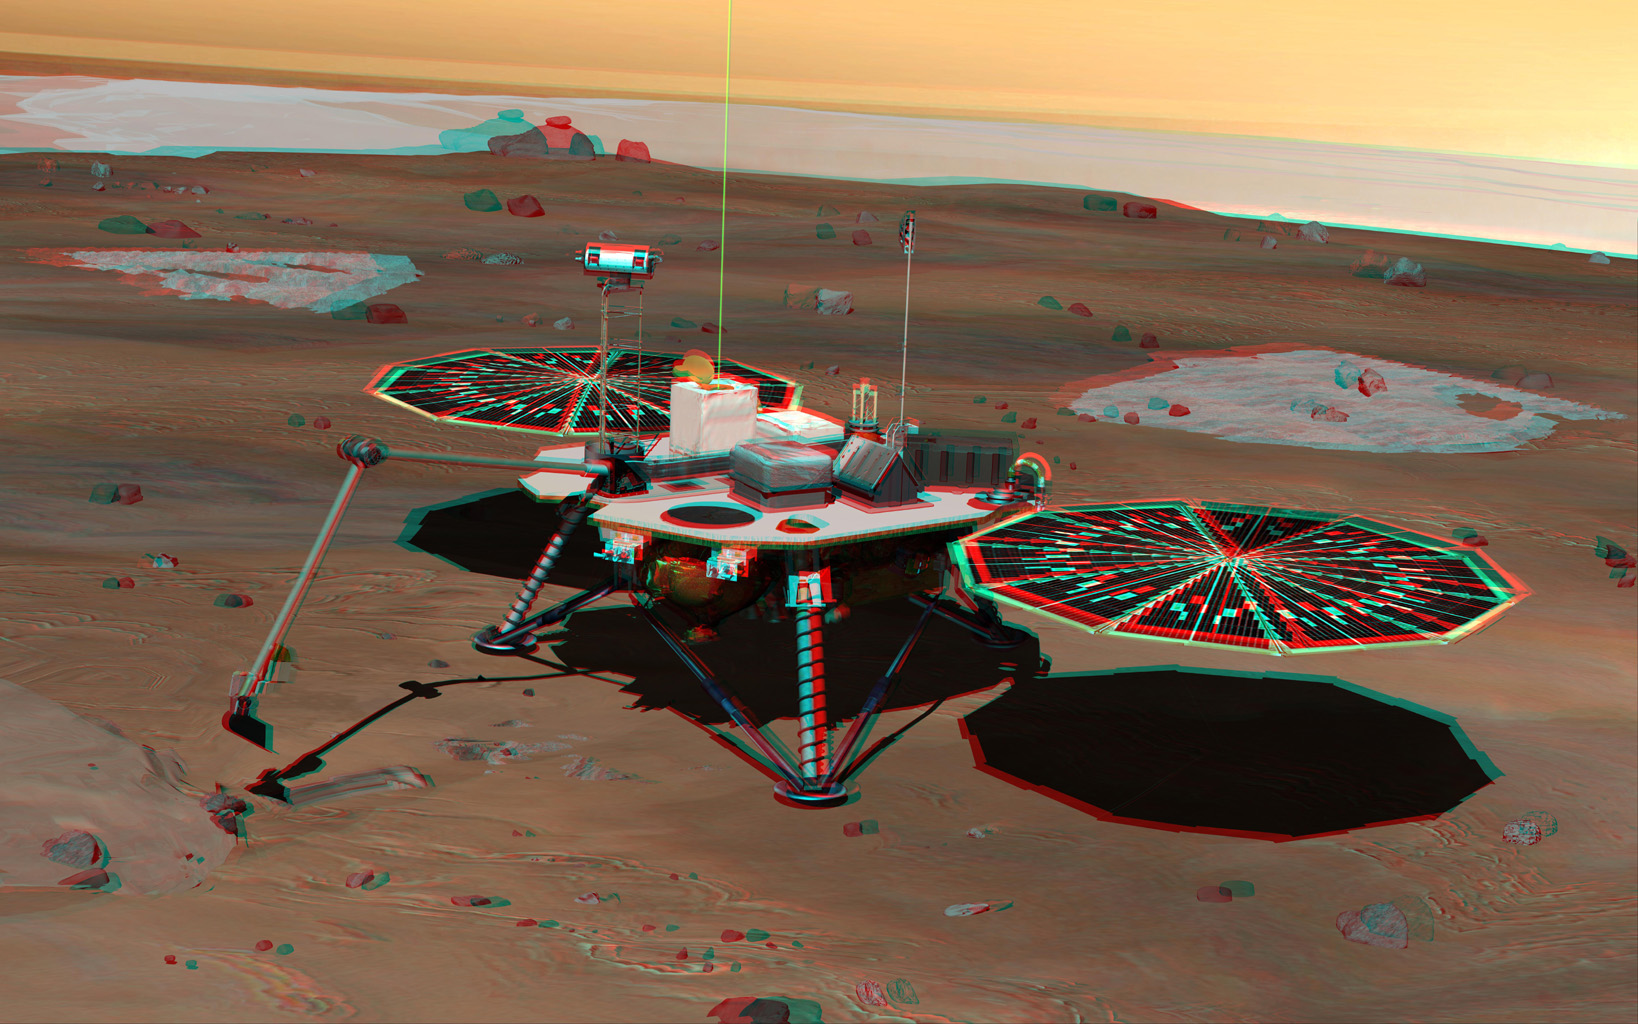 NASA's Phoenix Mars Lander monitors the atmosphere overhead and reaches out to the soil below in this stereo illustration of the spacecraft fully deployed on the surface of Mars. 3D glasses are necessary to view this image.